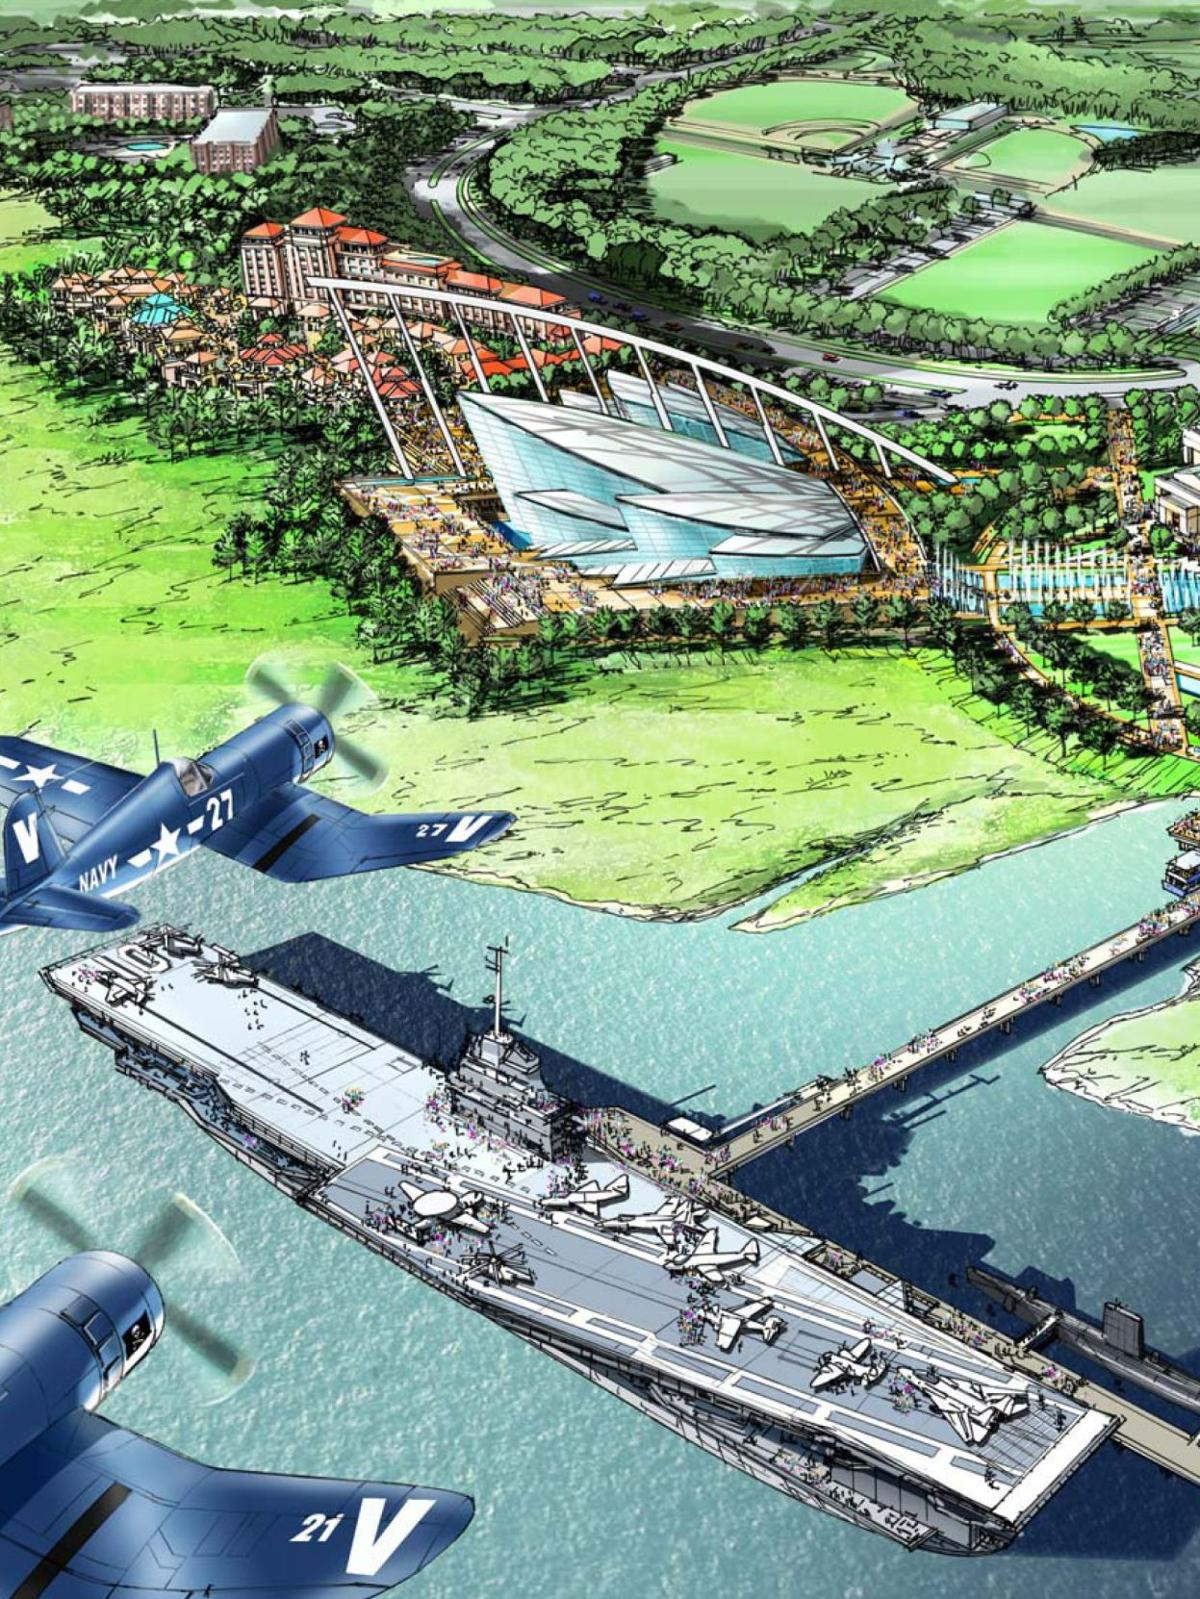 Patriots Point unveils plans for $100 million Medal of Honor Museum